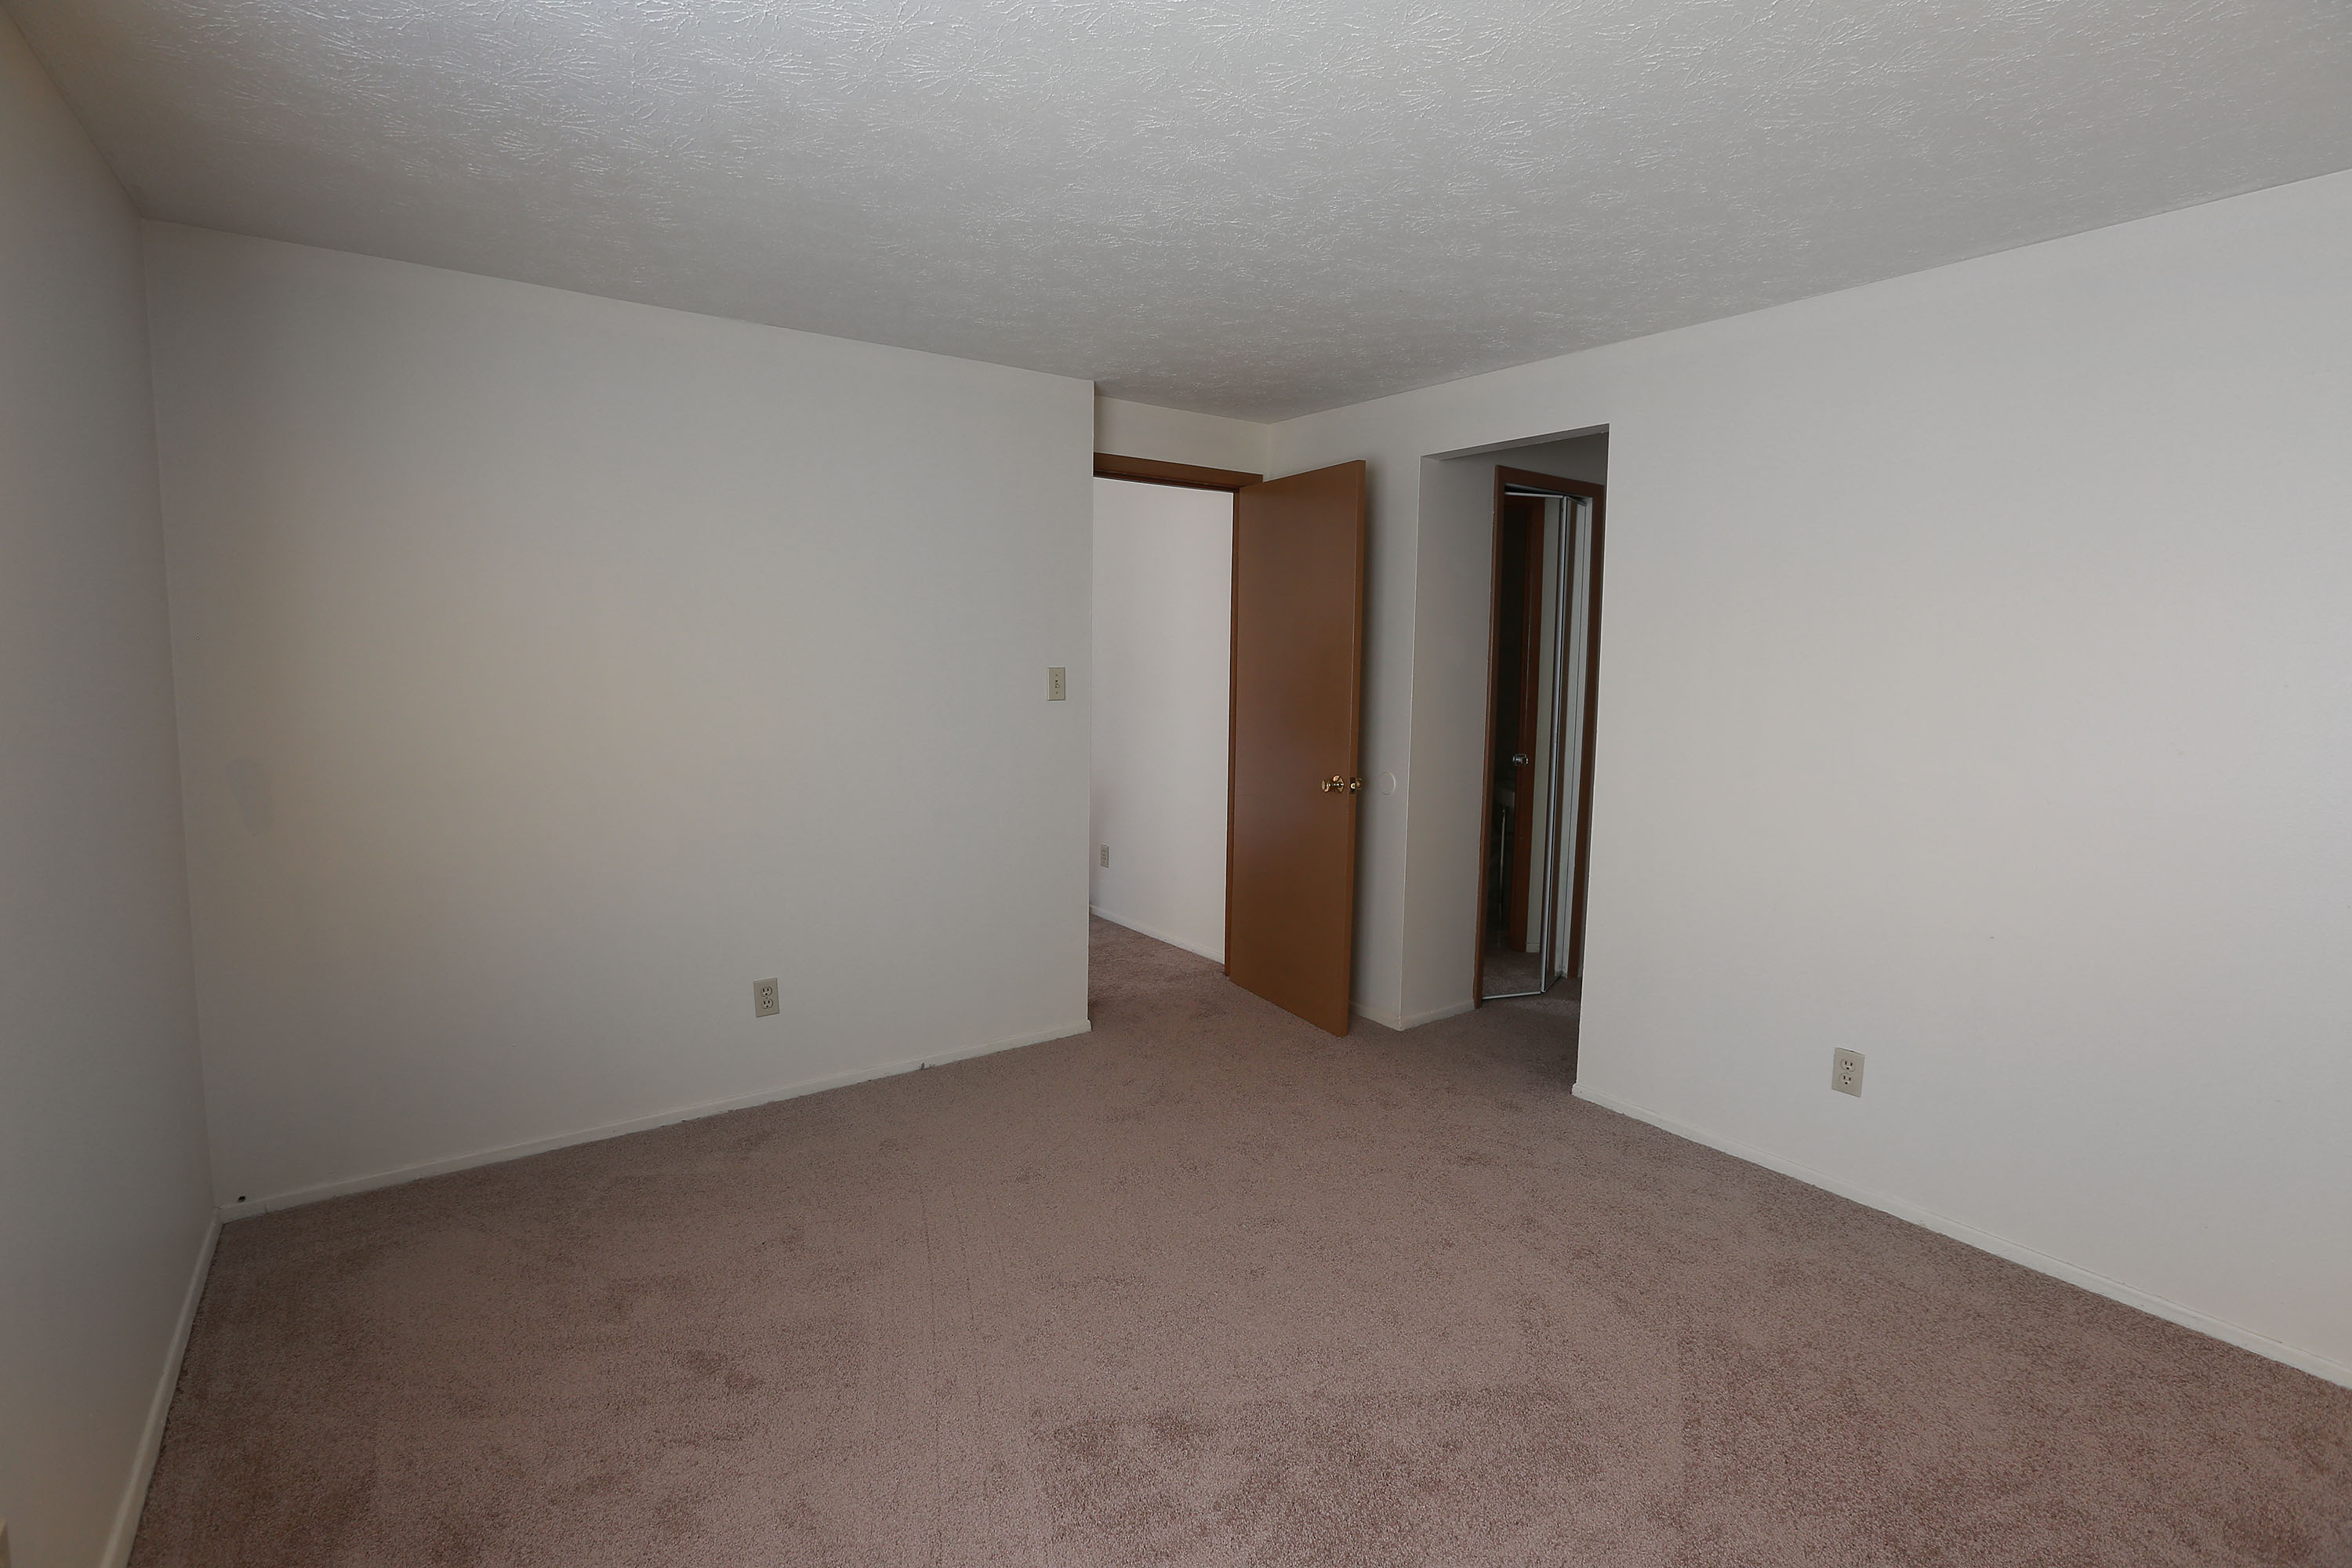 2B Bedroom #1 at the Greenridge on Euclid Apartments in Euclid, OH